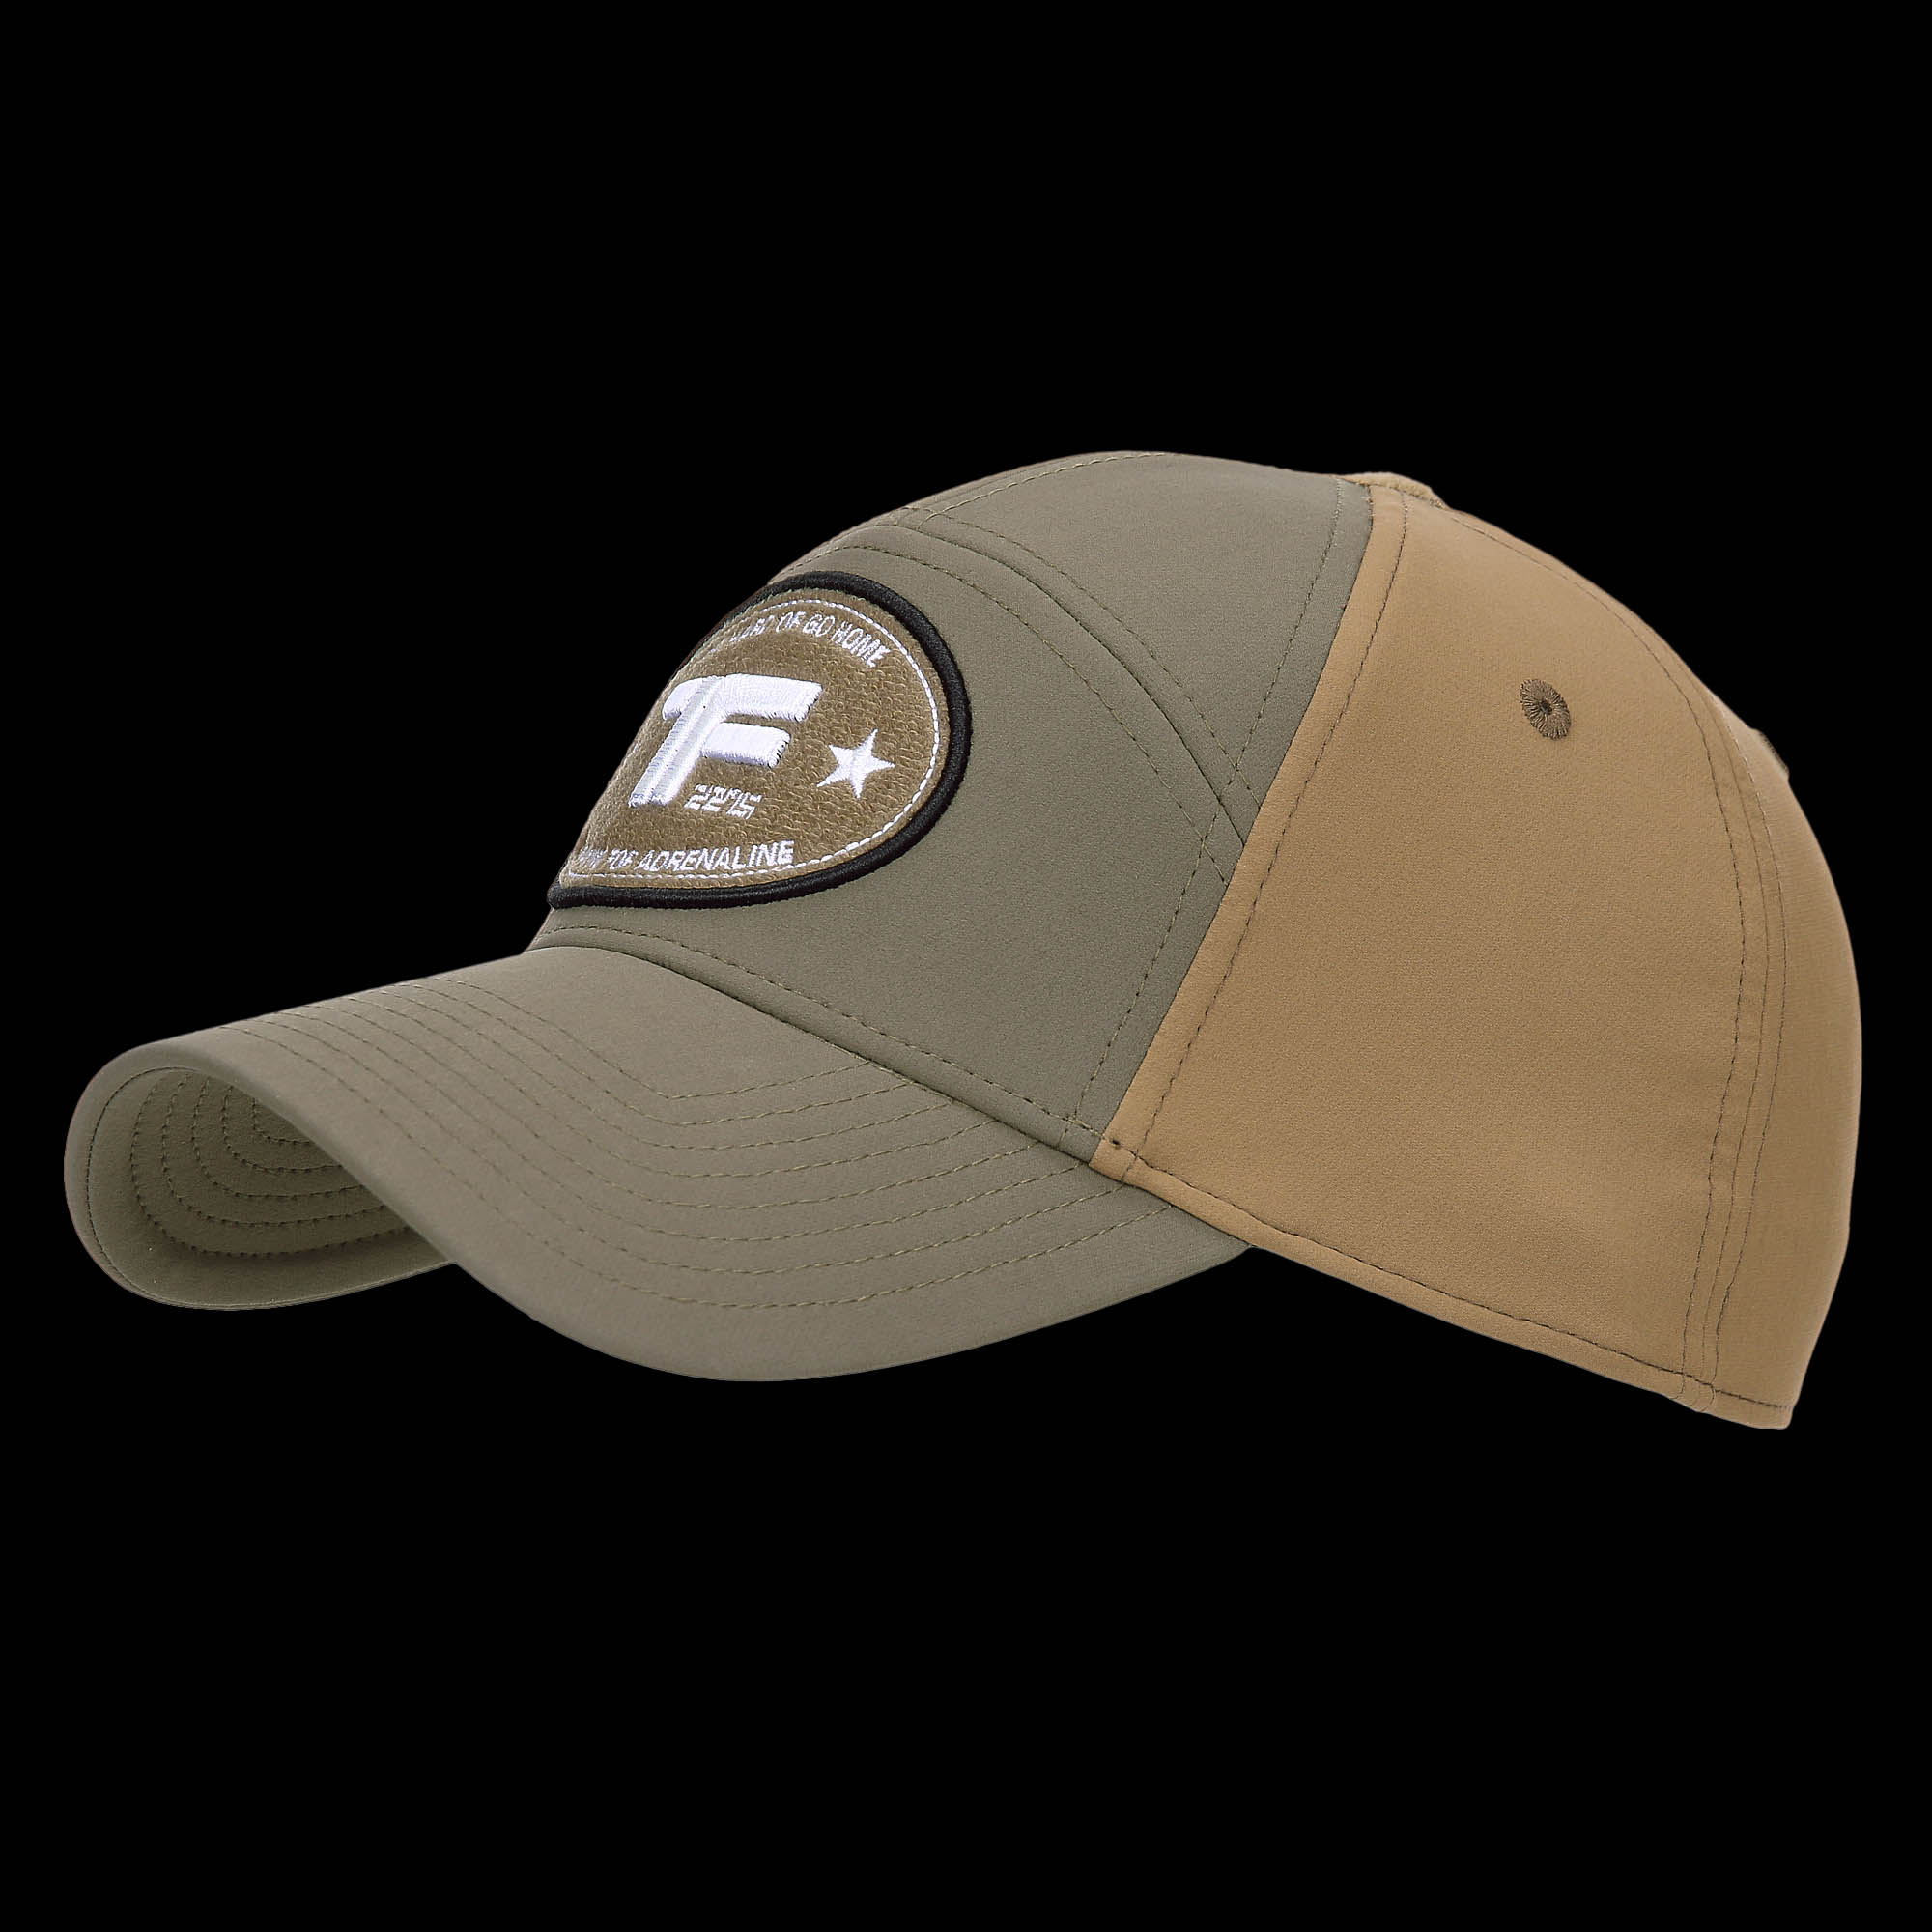 TF-2215 Soft Shell Cap Ranger Green / Coyote